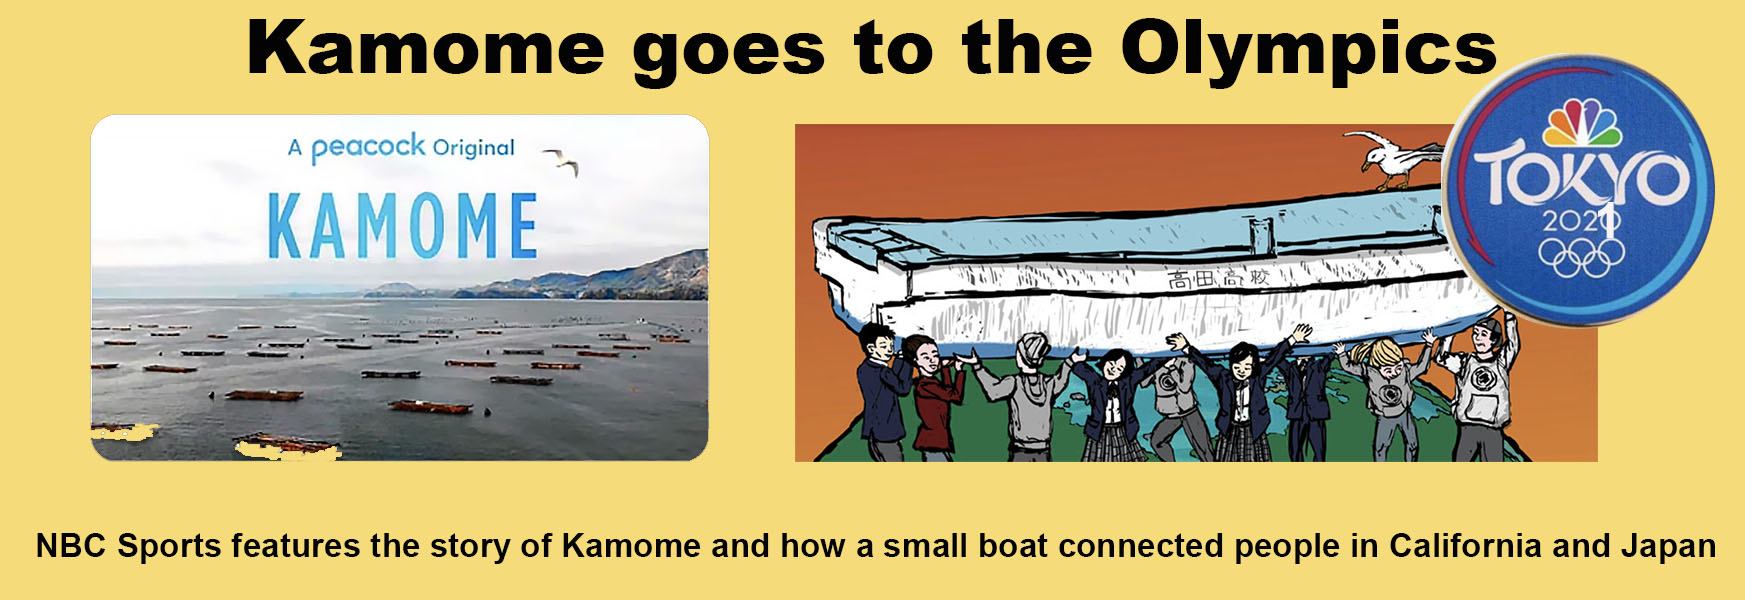 Kamome goes tot he Olympics in 2021 as NCB highlights how the a small boat connected people in California and Japan